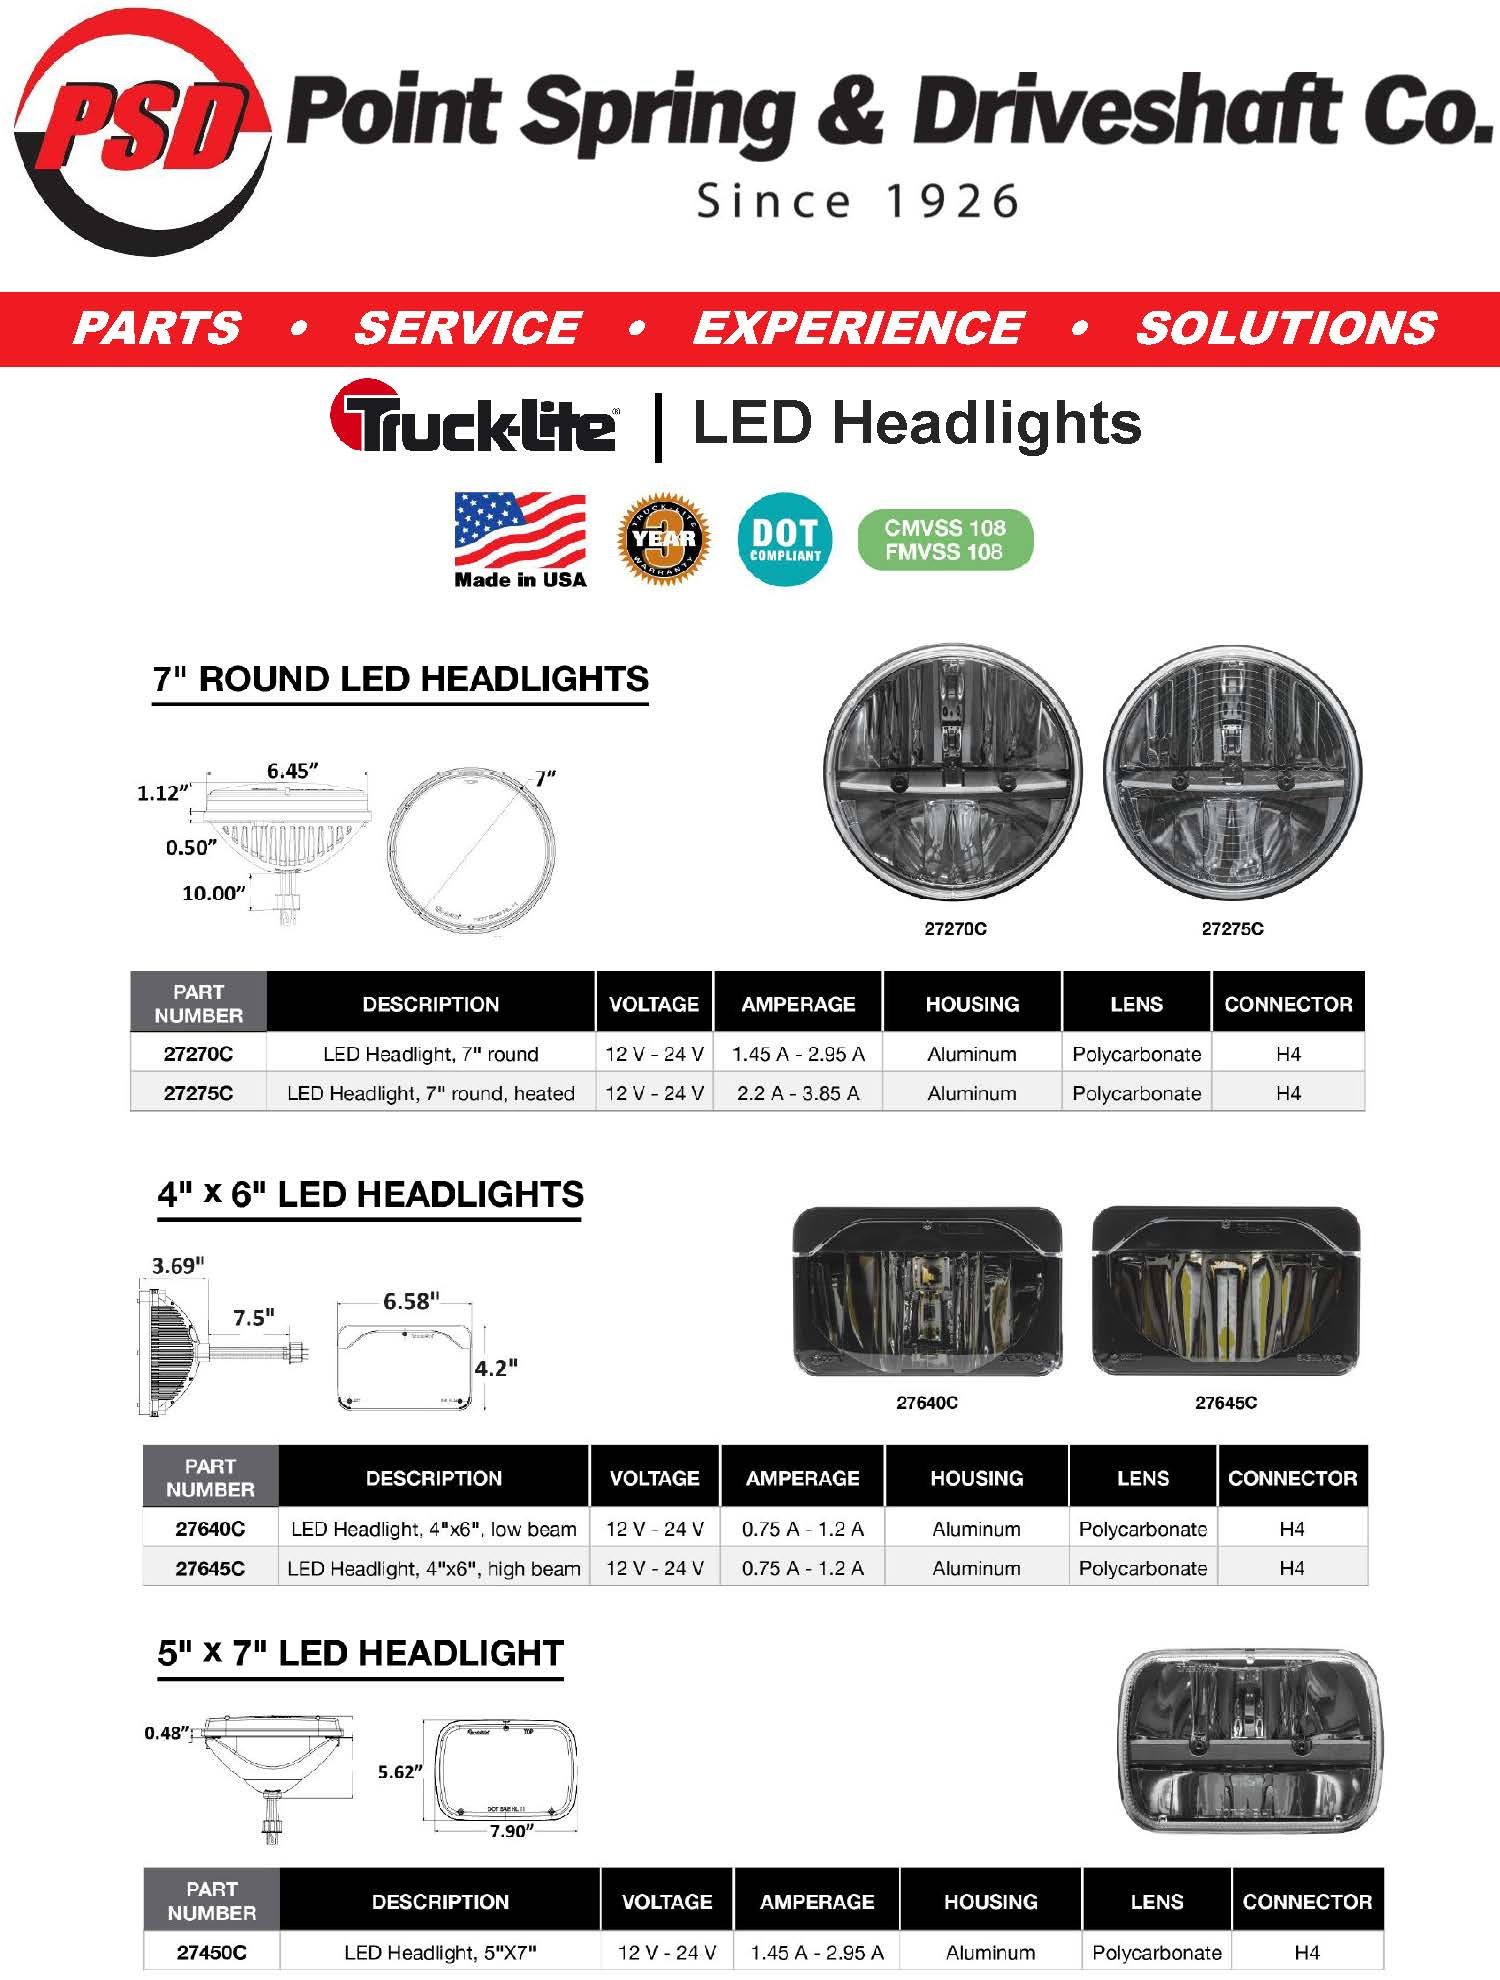 Truck Lite LED Headlight flyer Page 2